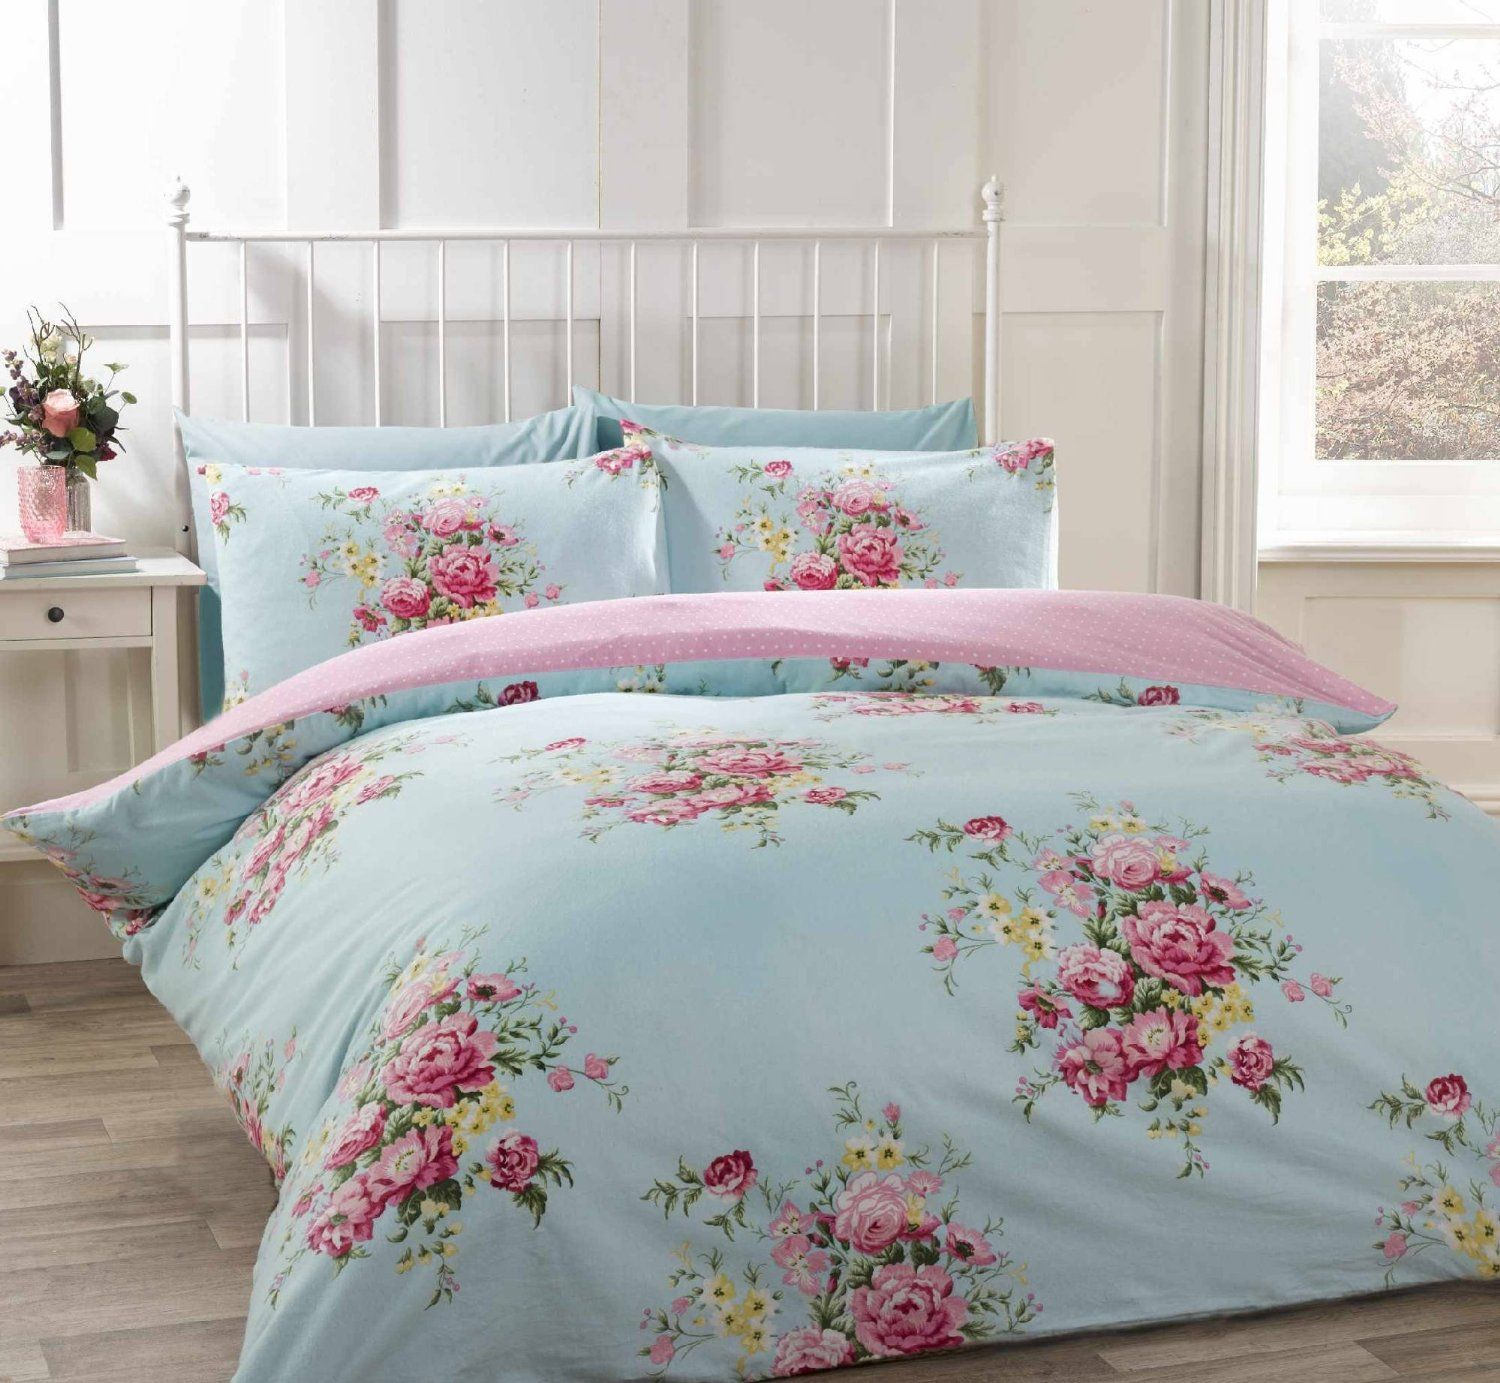 100% cotton flannelette single quilt duvet cover duck egg blue and